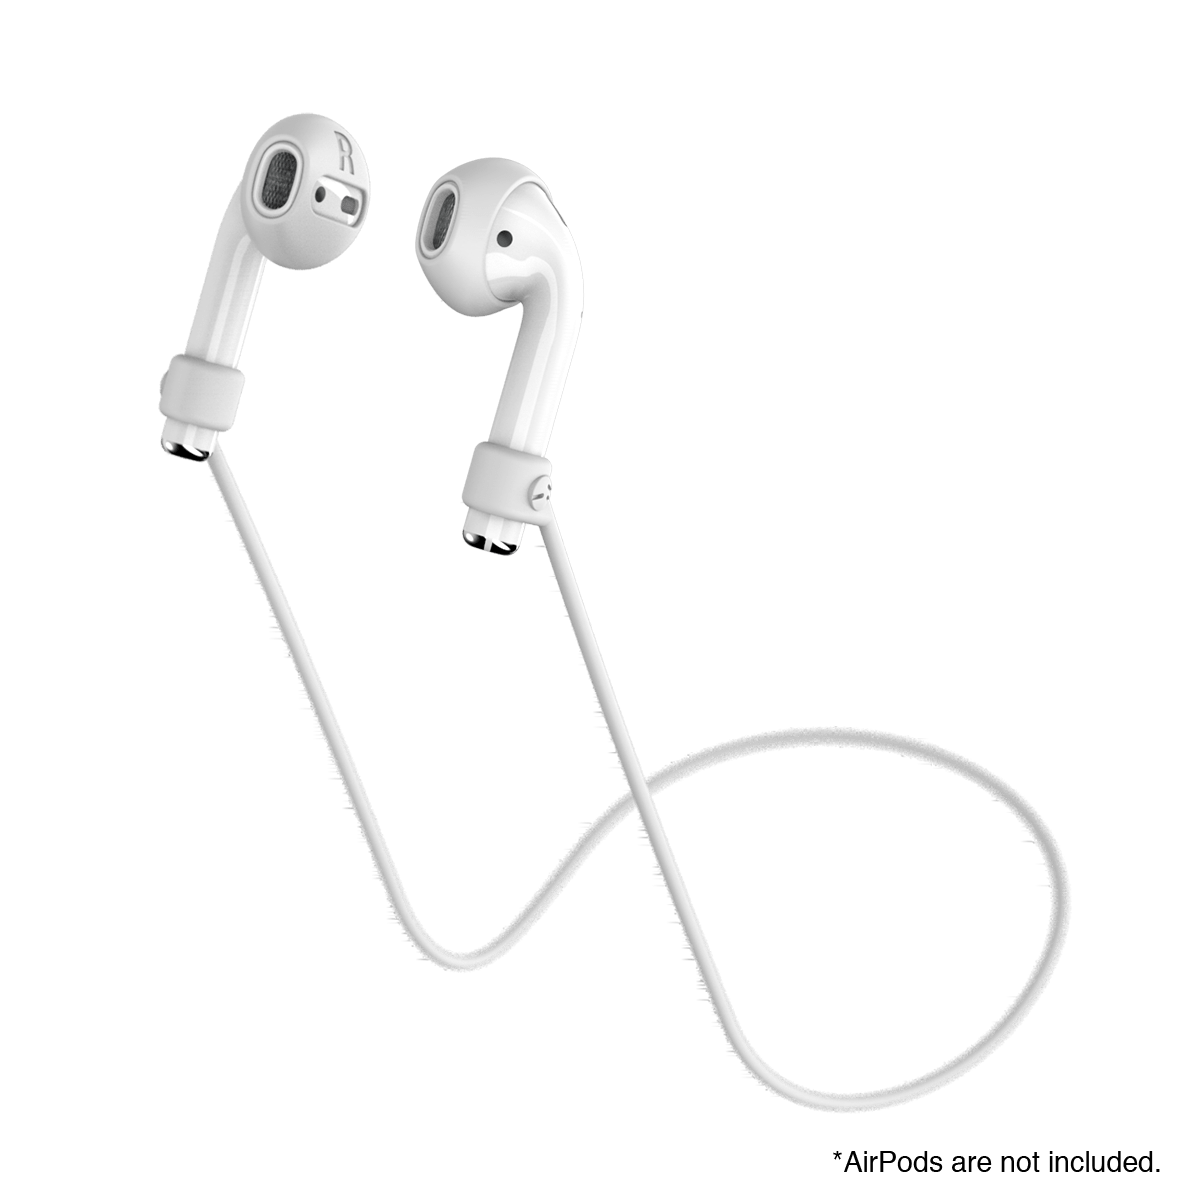 Switcheasy Introduces Airbuddy The Best Companion For Airpods